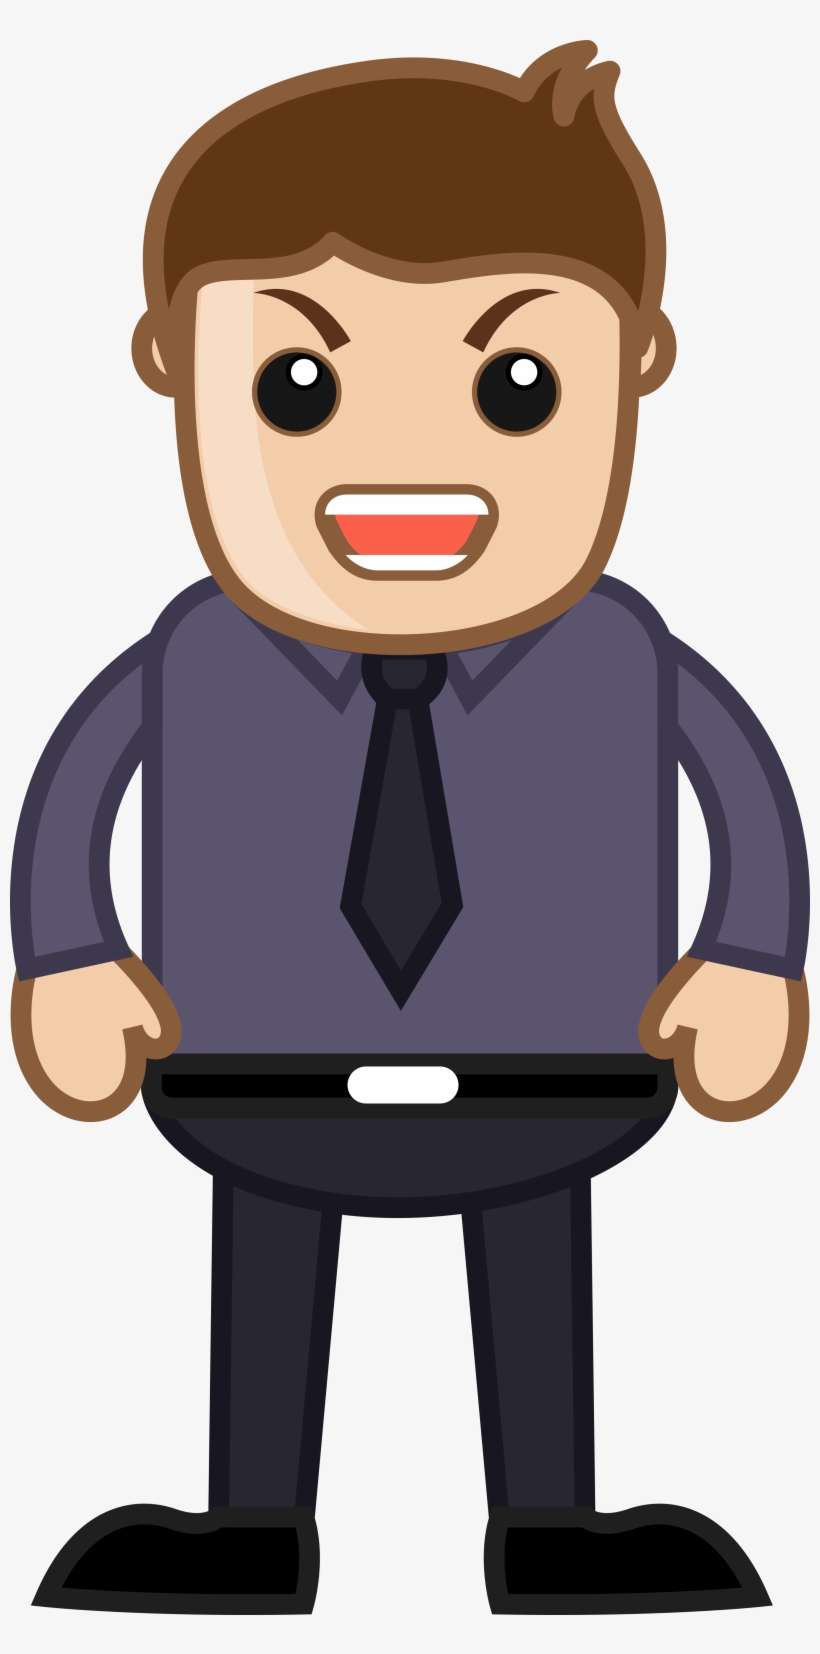 Person Transparent Office Angry Man Cartoon Png Free Transparent